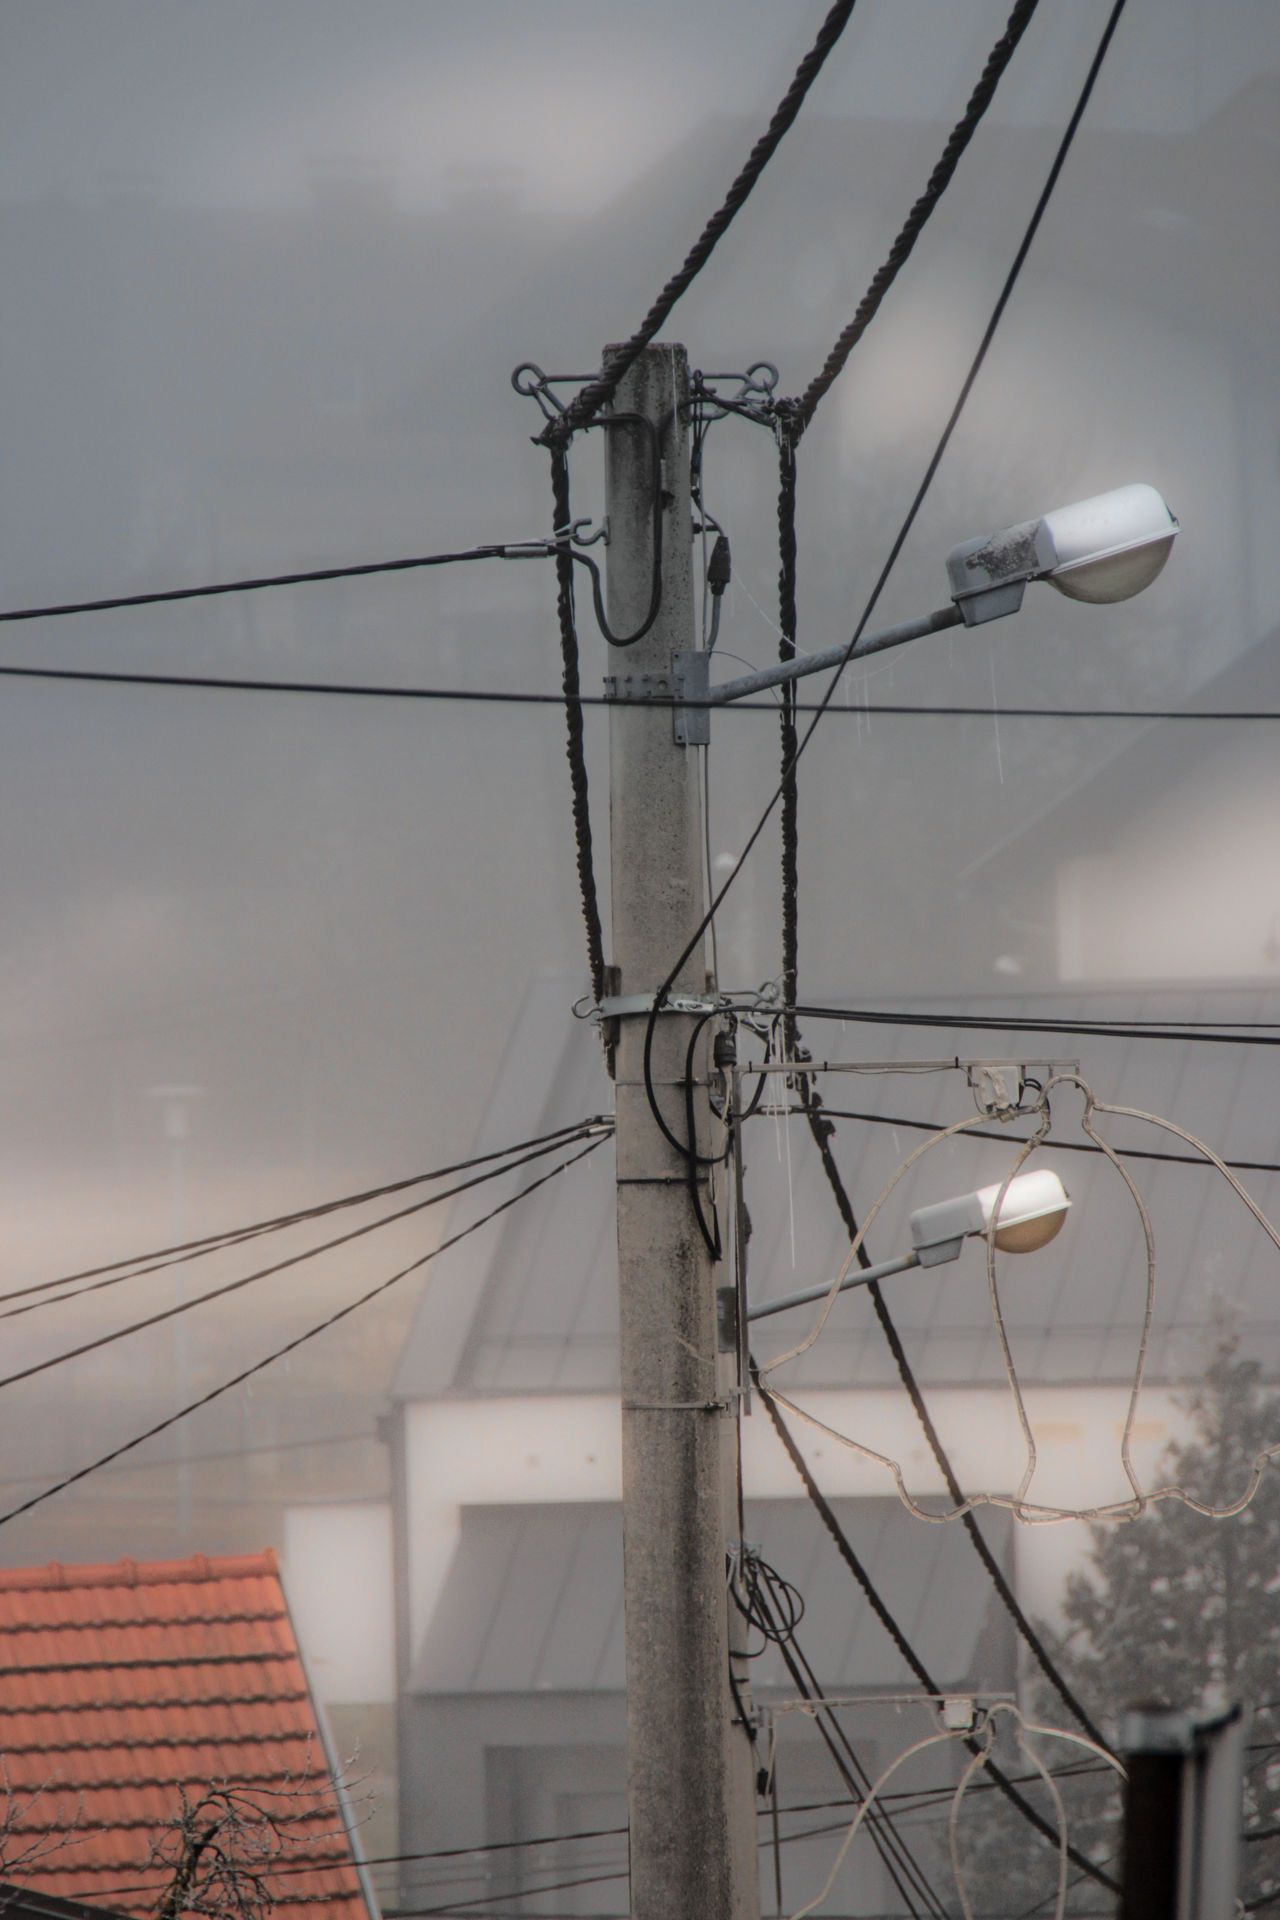 Chaos a.d. Cable Power Supply Power Line  Connection Electricity  Fuel And Power Generation Electricity Pylon Telephone Line Lighting Equipment Sky No People Outdoors Low Angle View Telephone Pole Complexity Technology High Voltage Sign